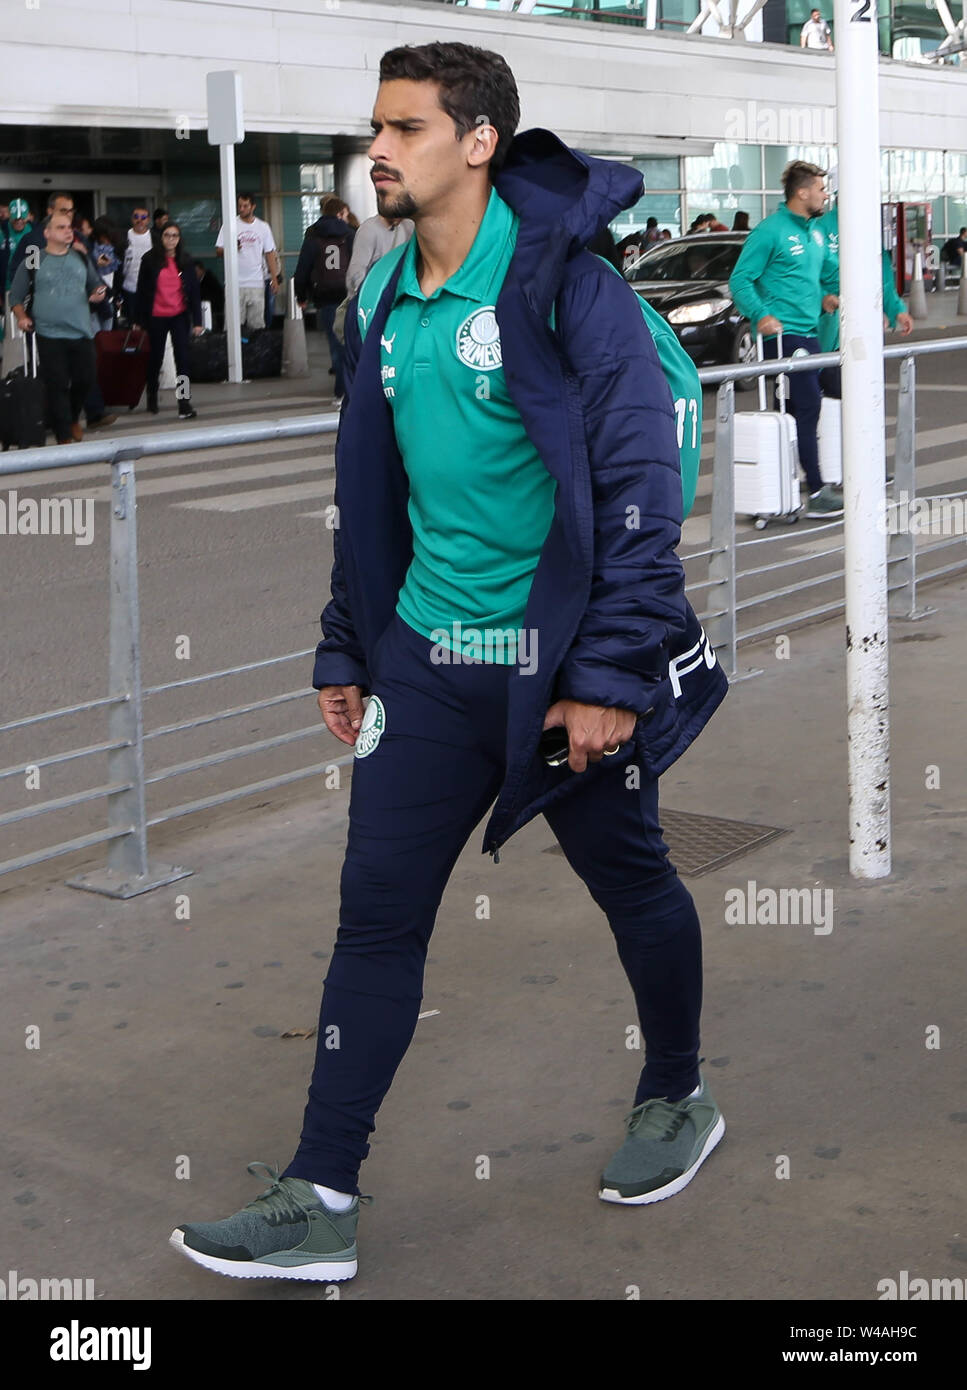 Buenos Aires, Argentina. 21st July, 2019. Player Jean from SE Palmeiras during landing at Buenos Aires International Airport. Credit: Cesar Greco/FotoArena/Alamy Live News Stock Photo